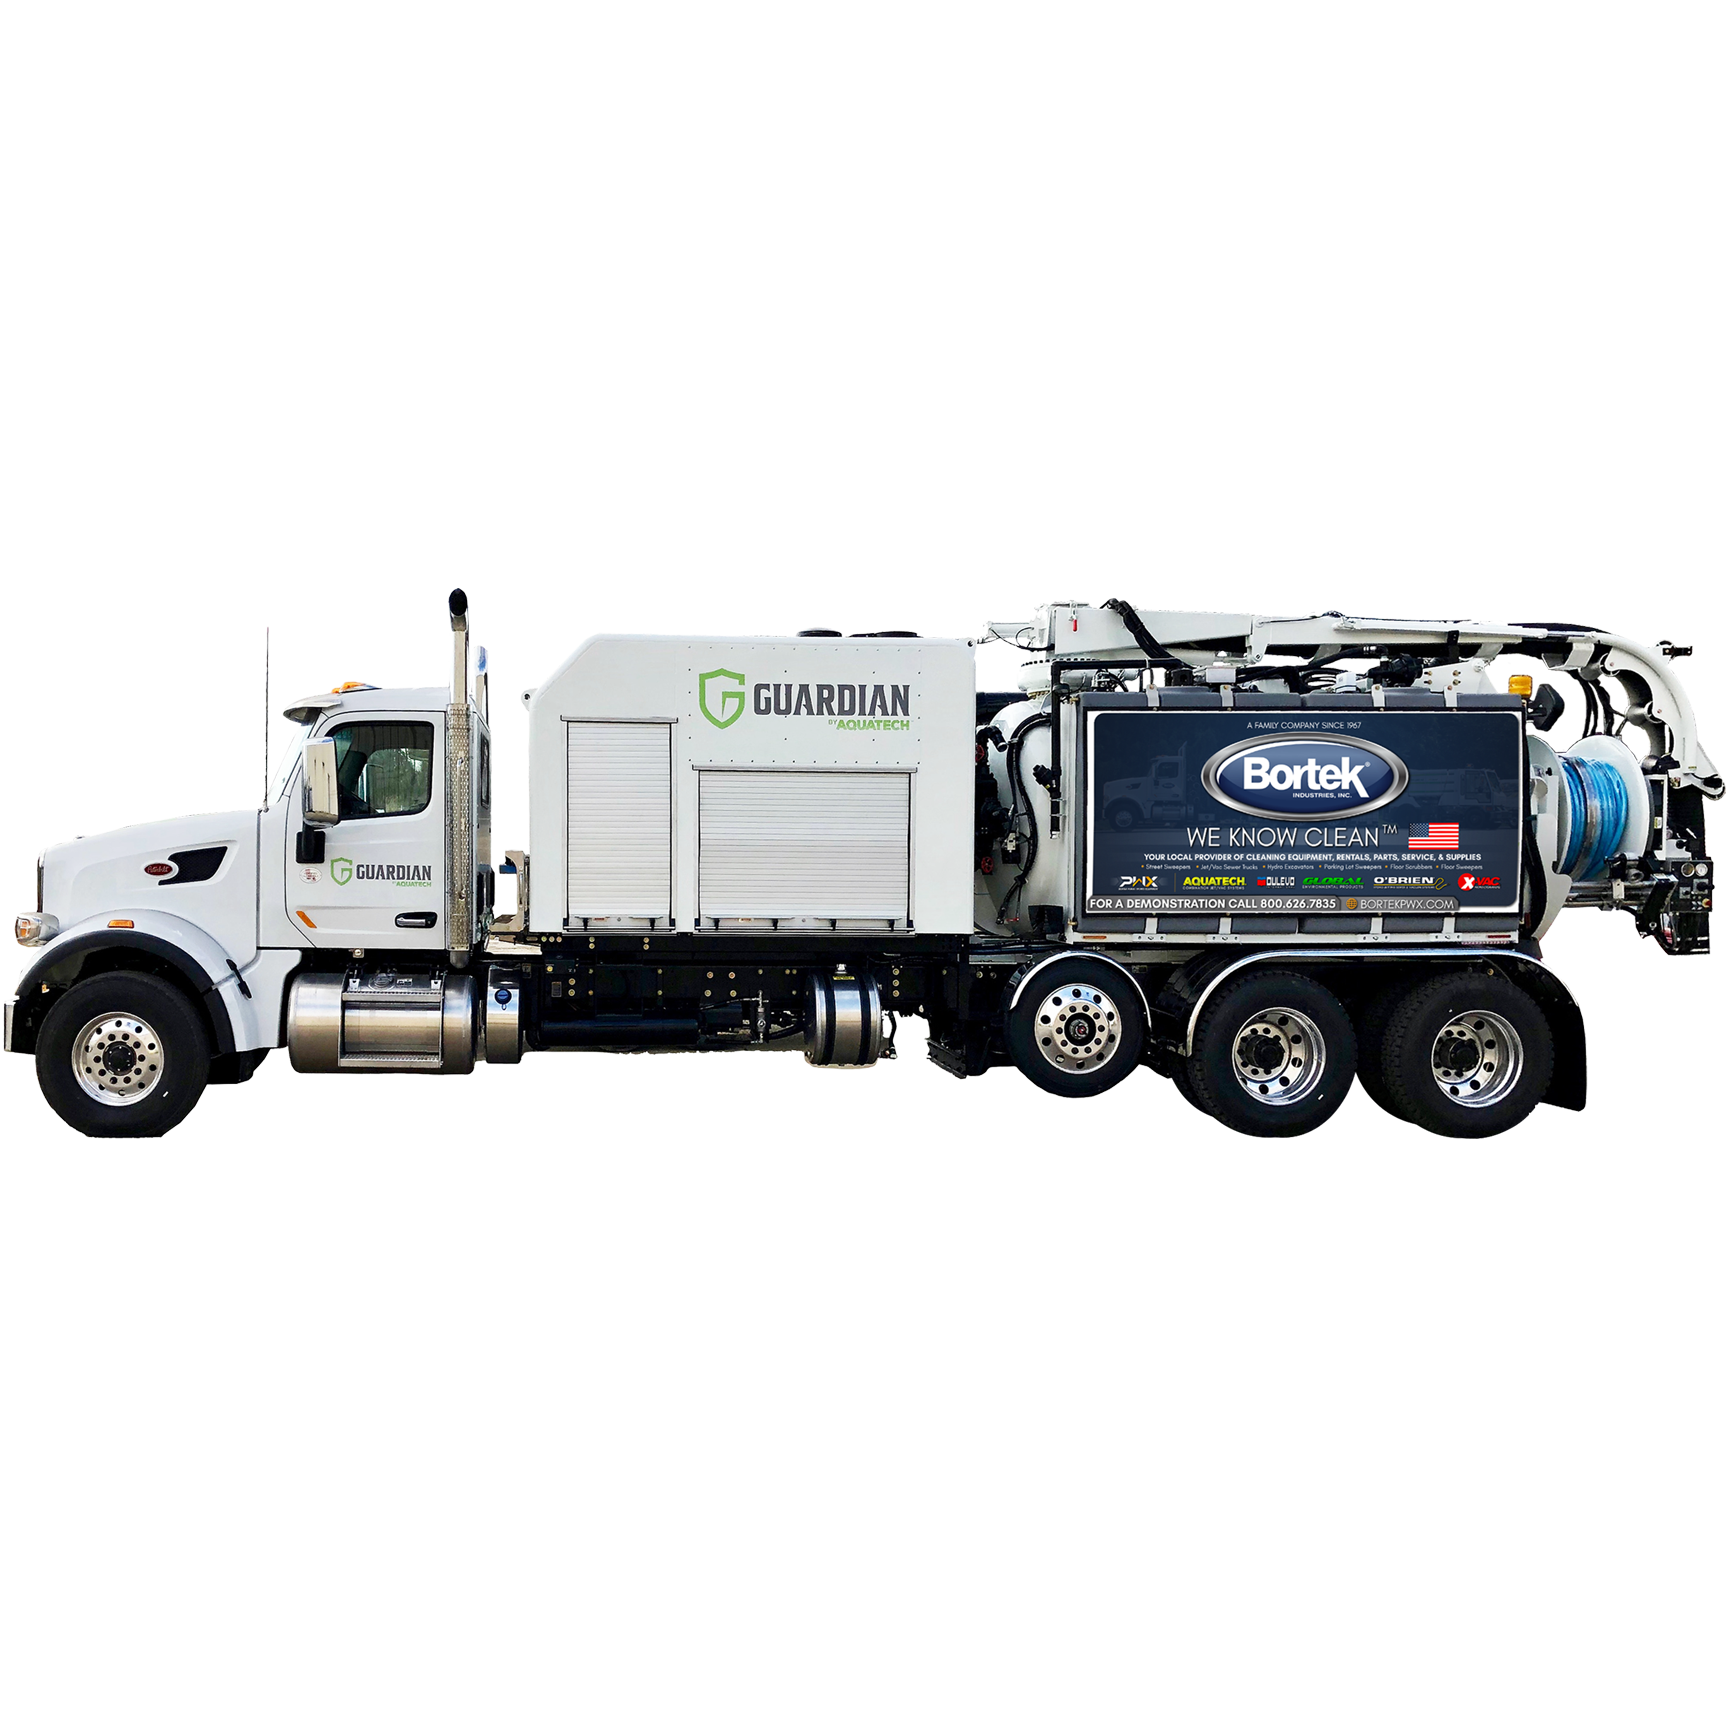 Aquatech Guardian Combination Sewer Cleaner Truck